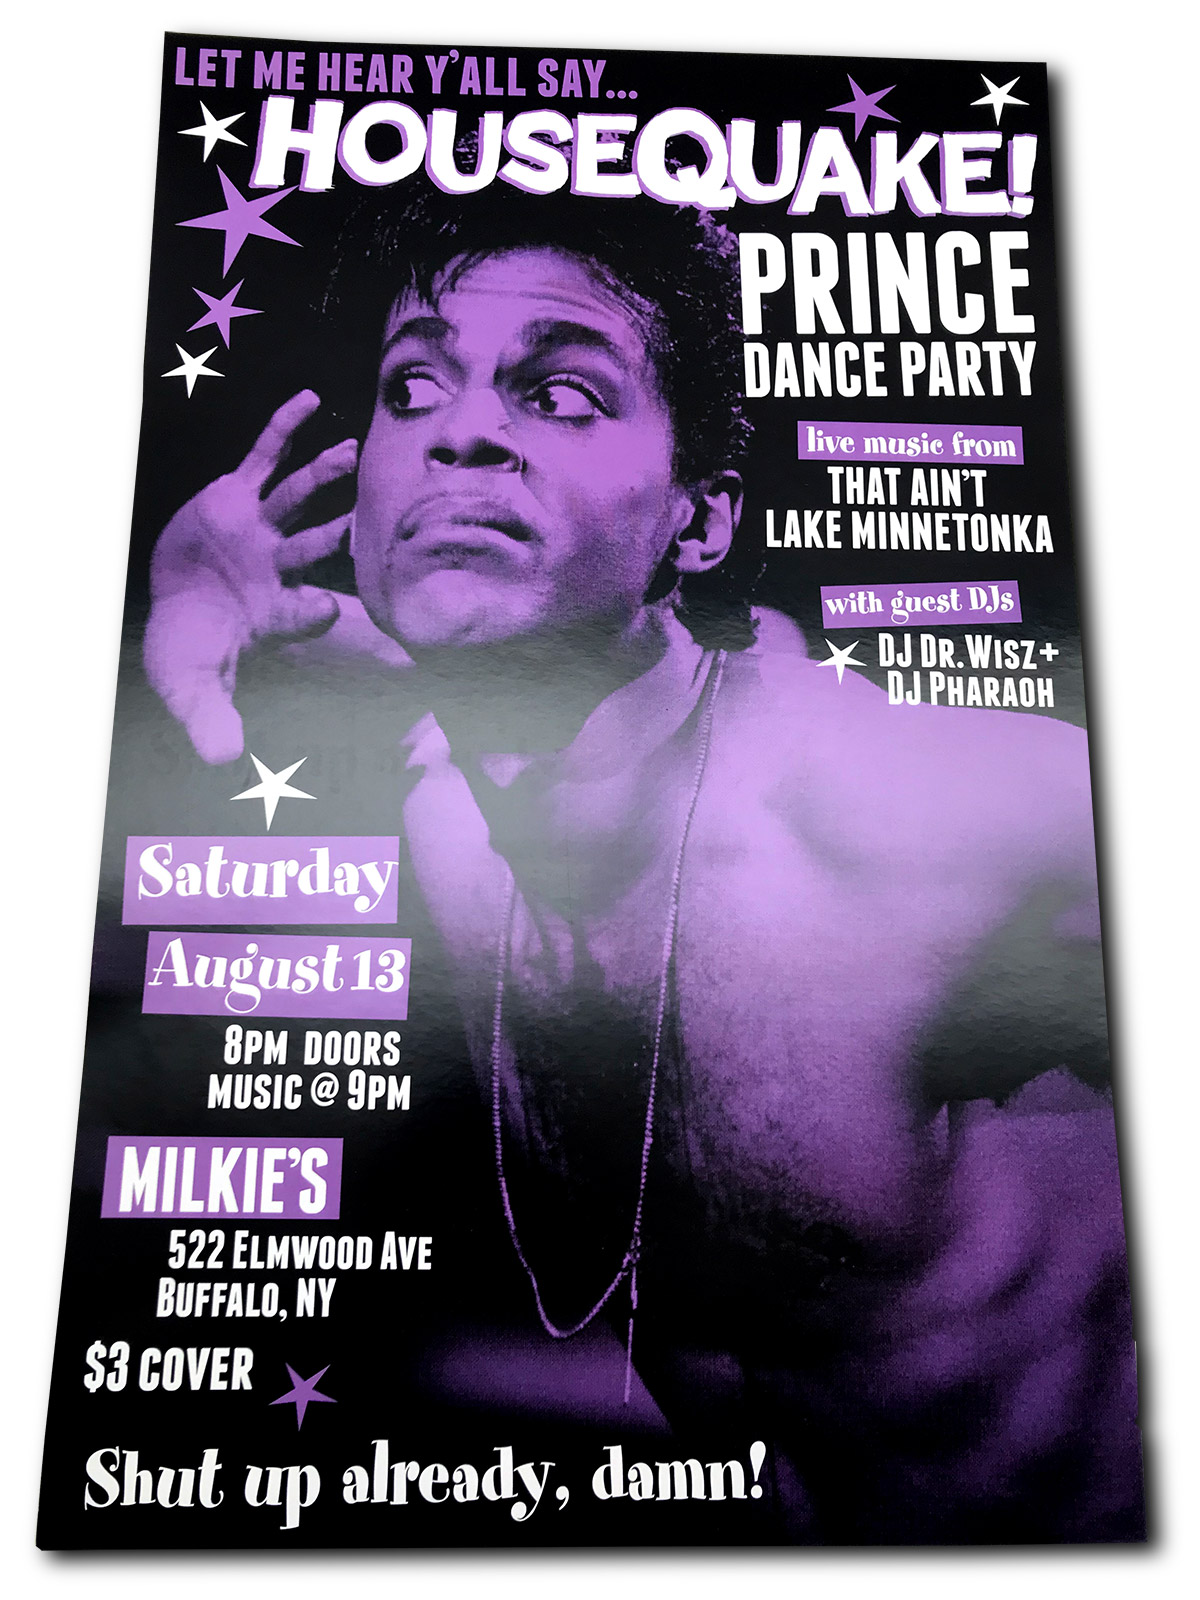 House quake, Prince tribute night, Prince dance party, this ain't lake minnetonka, DJ Dr. Wisz, DJ Pharaoh, Buffalo NY